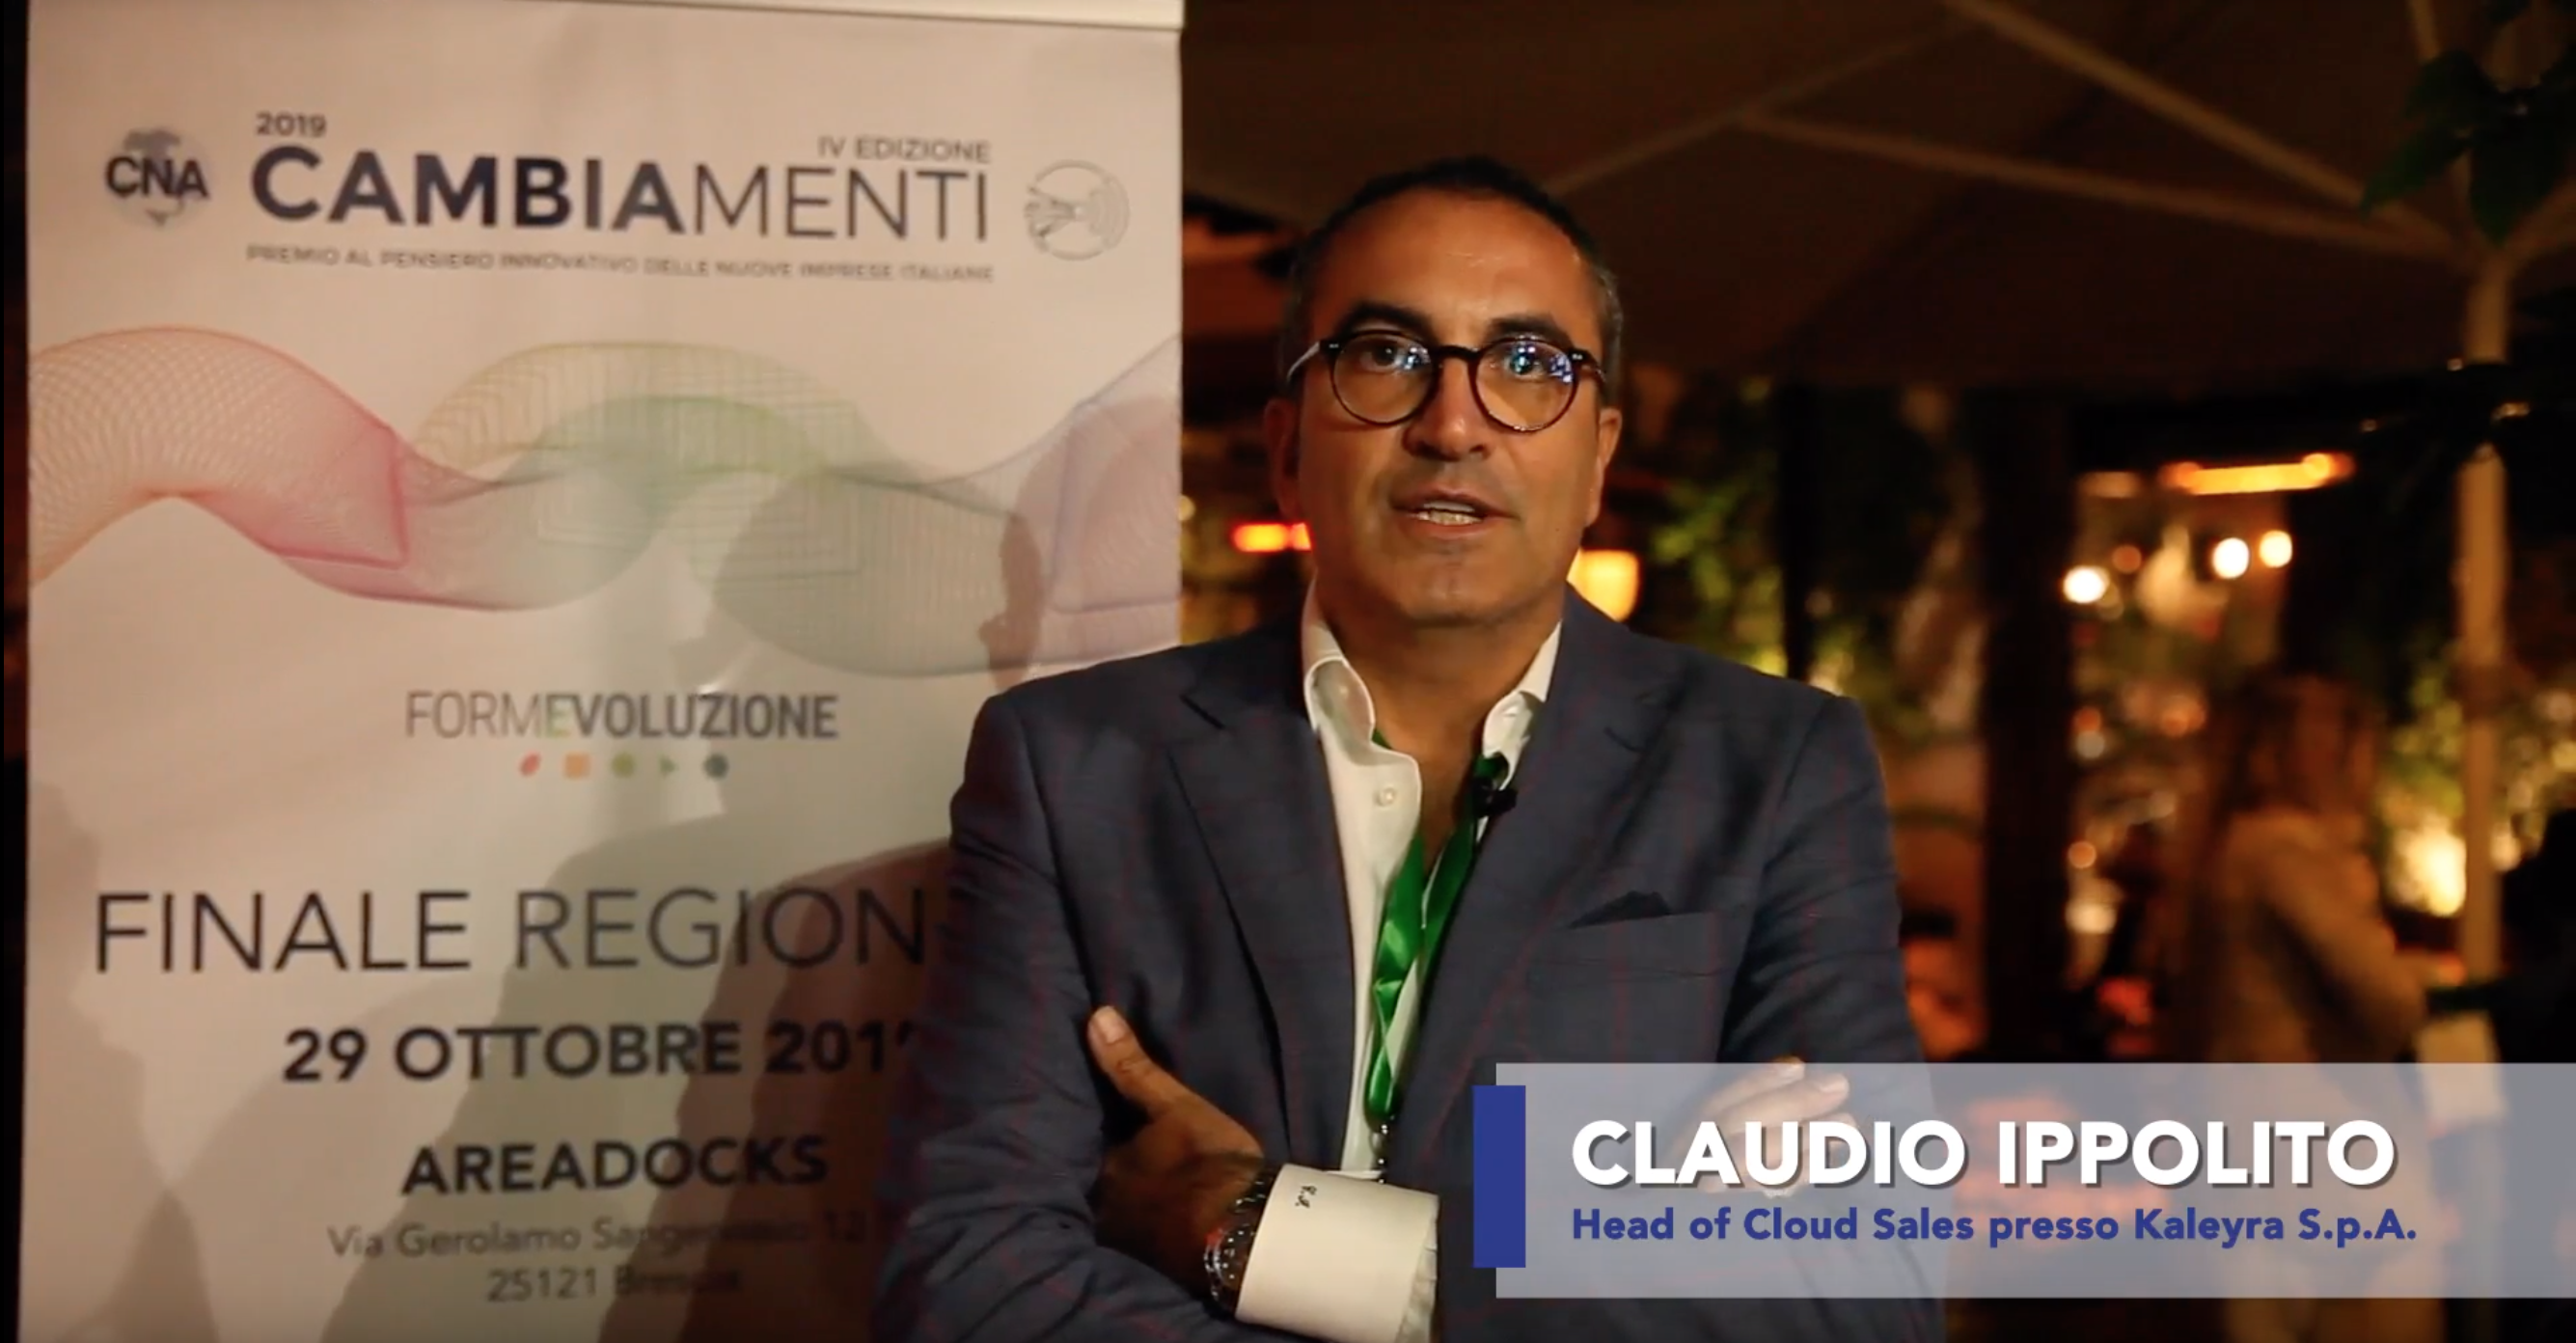 Claudio-Ippolito-Head-of-Cloud-Sales